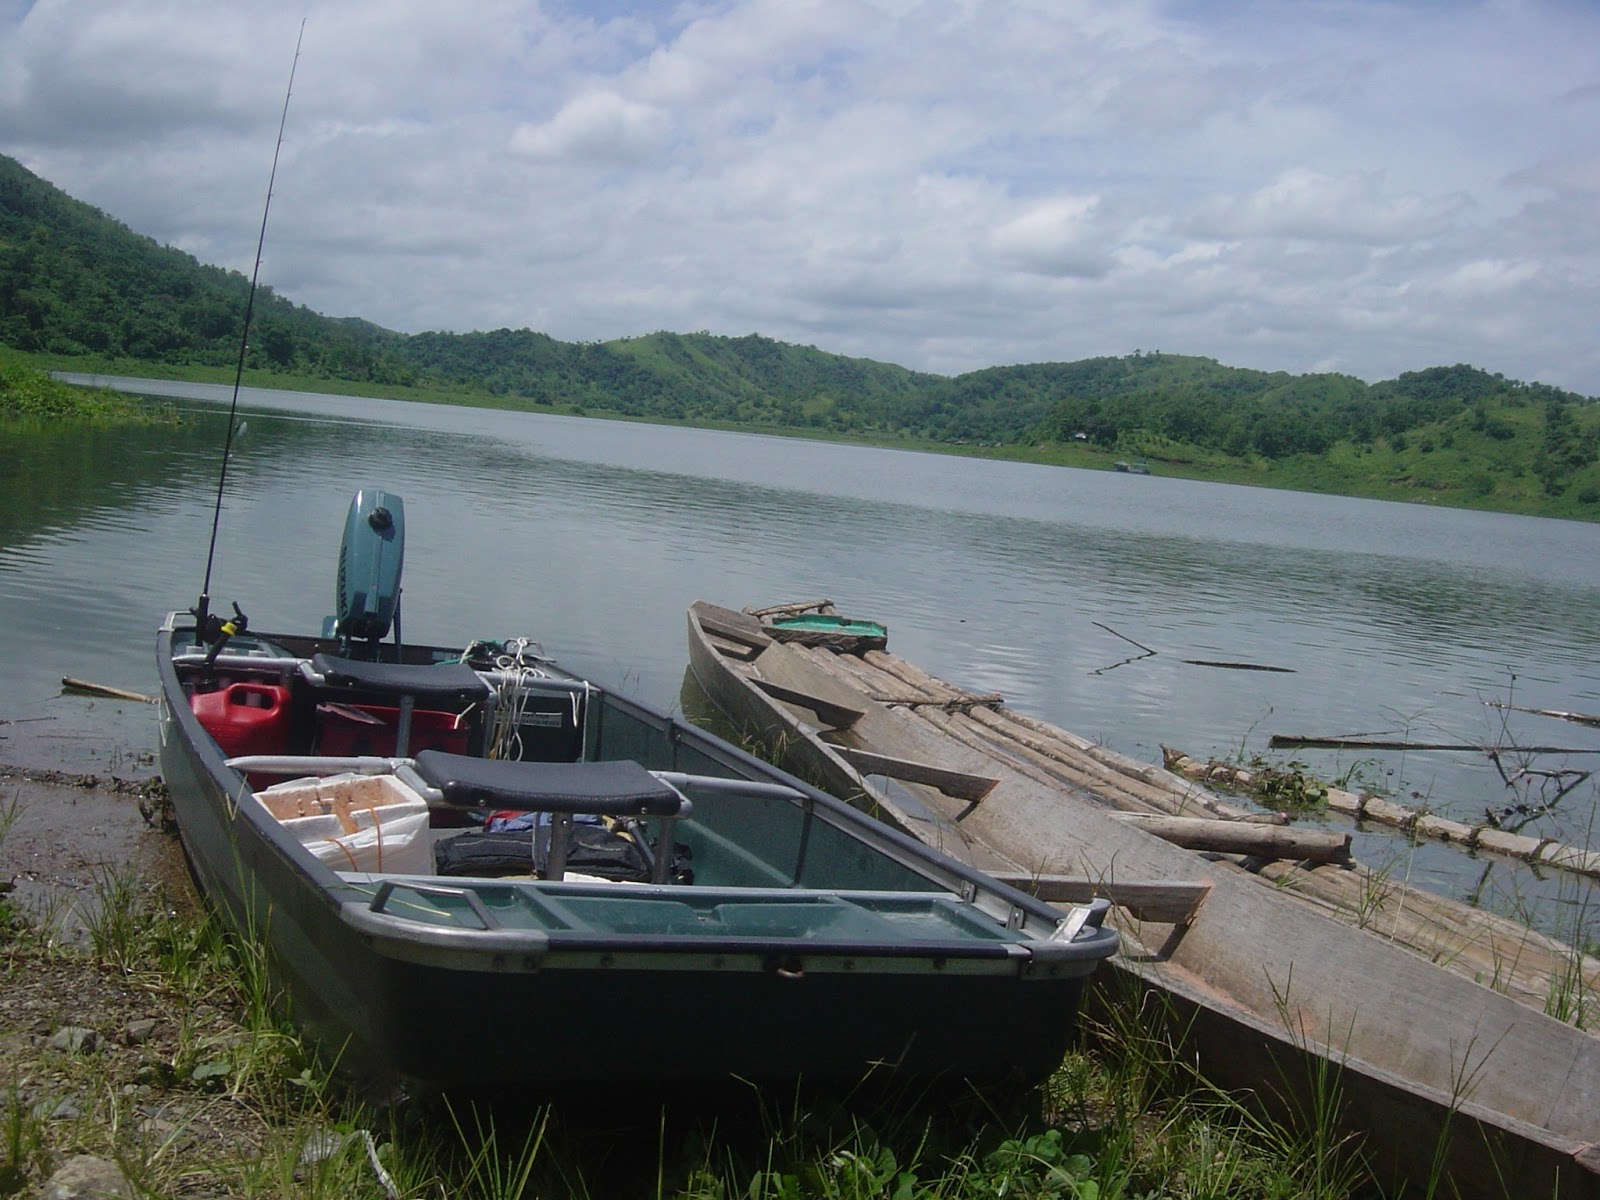 The Cartop Angler: My First Boat